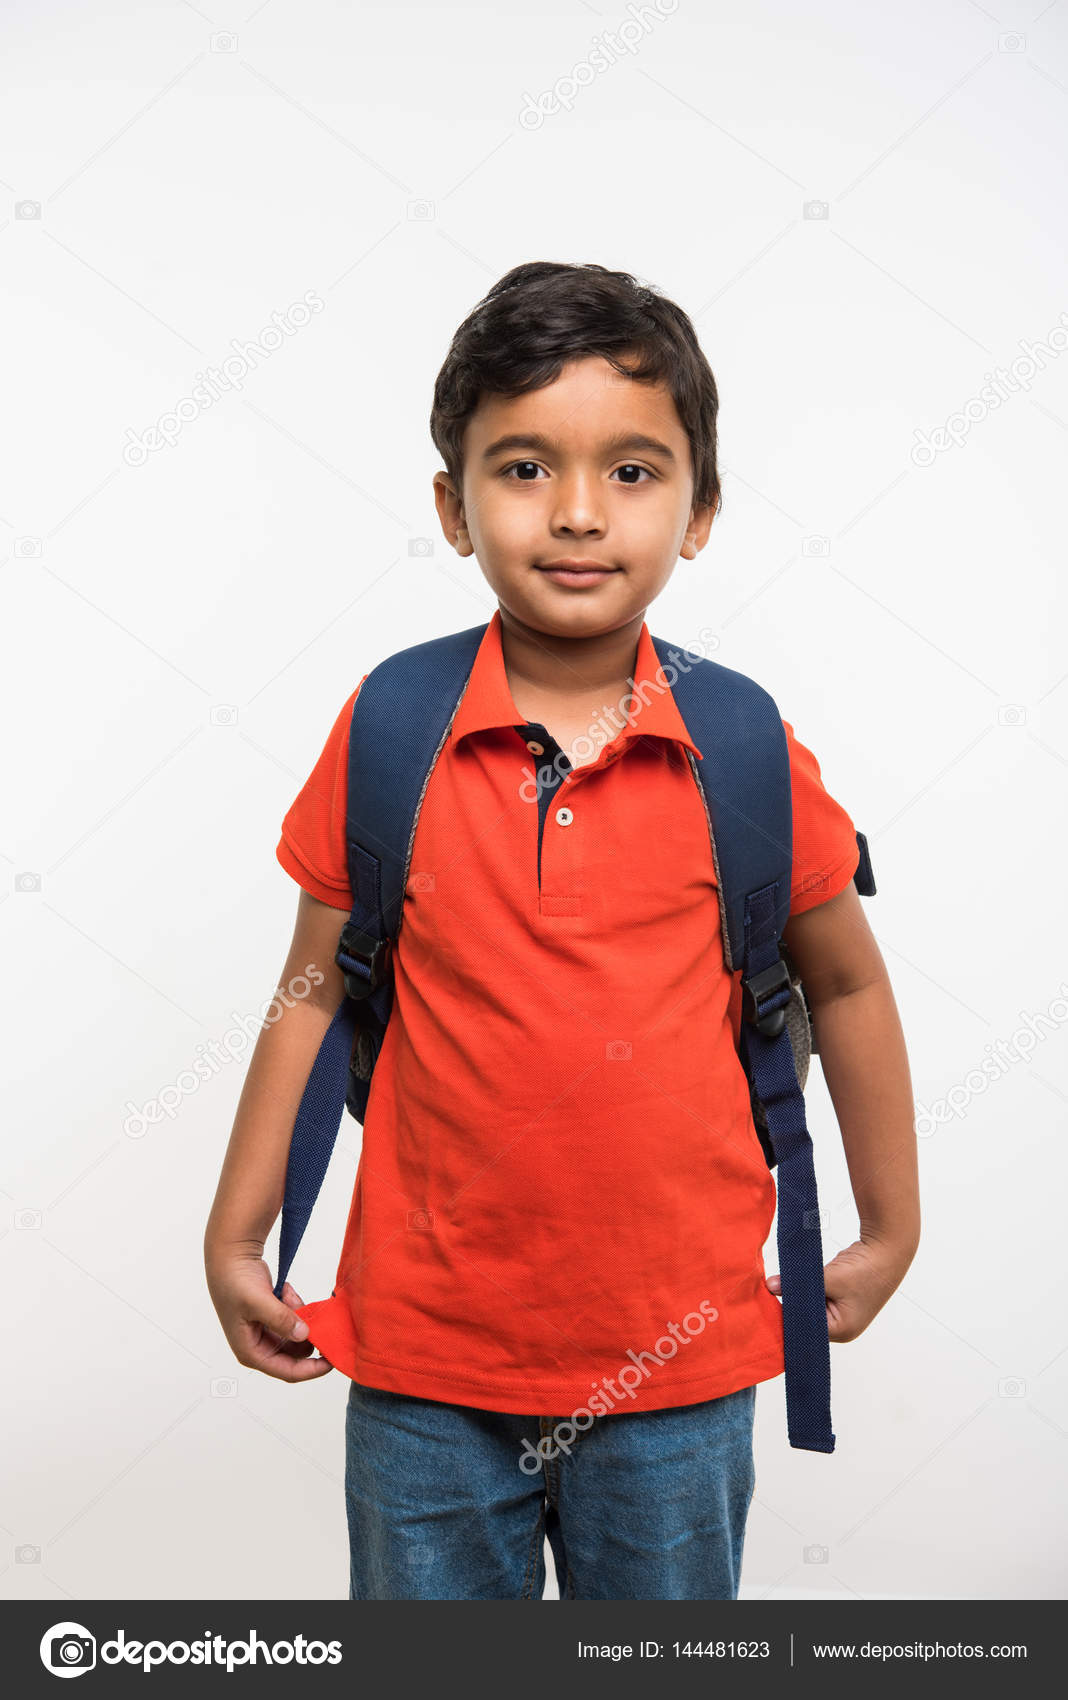 Indian Cute Kid Or Boy Leaving Or Going To School With